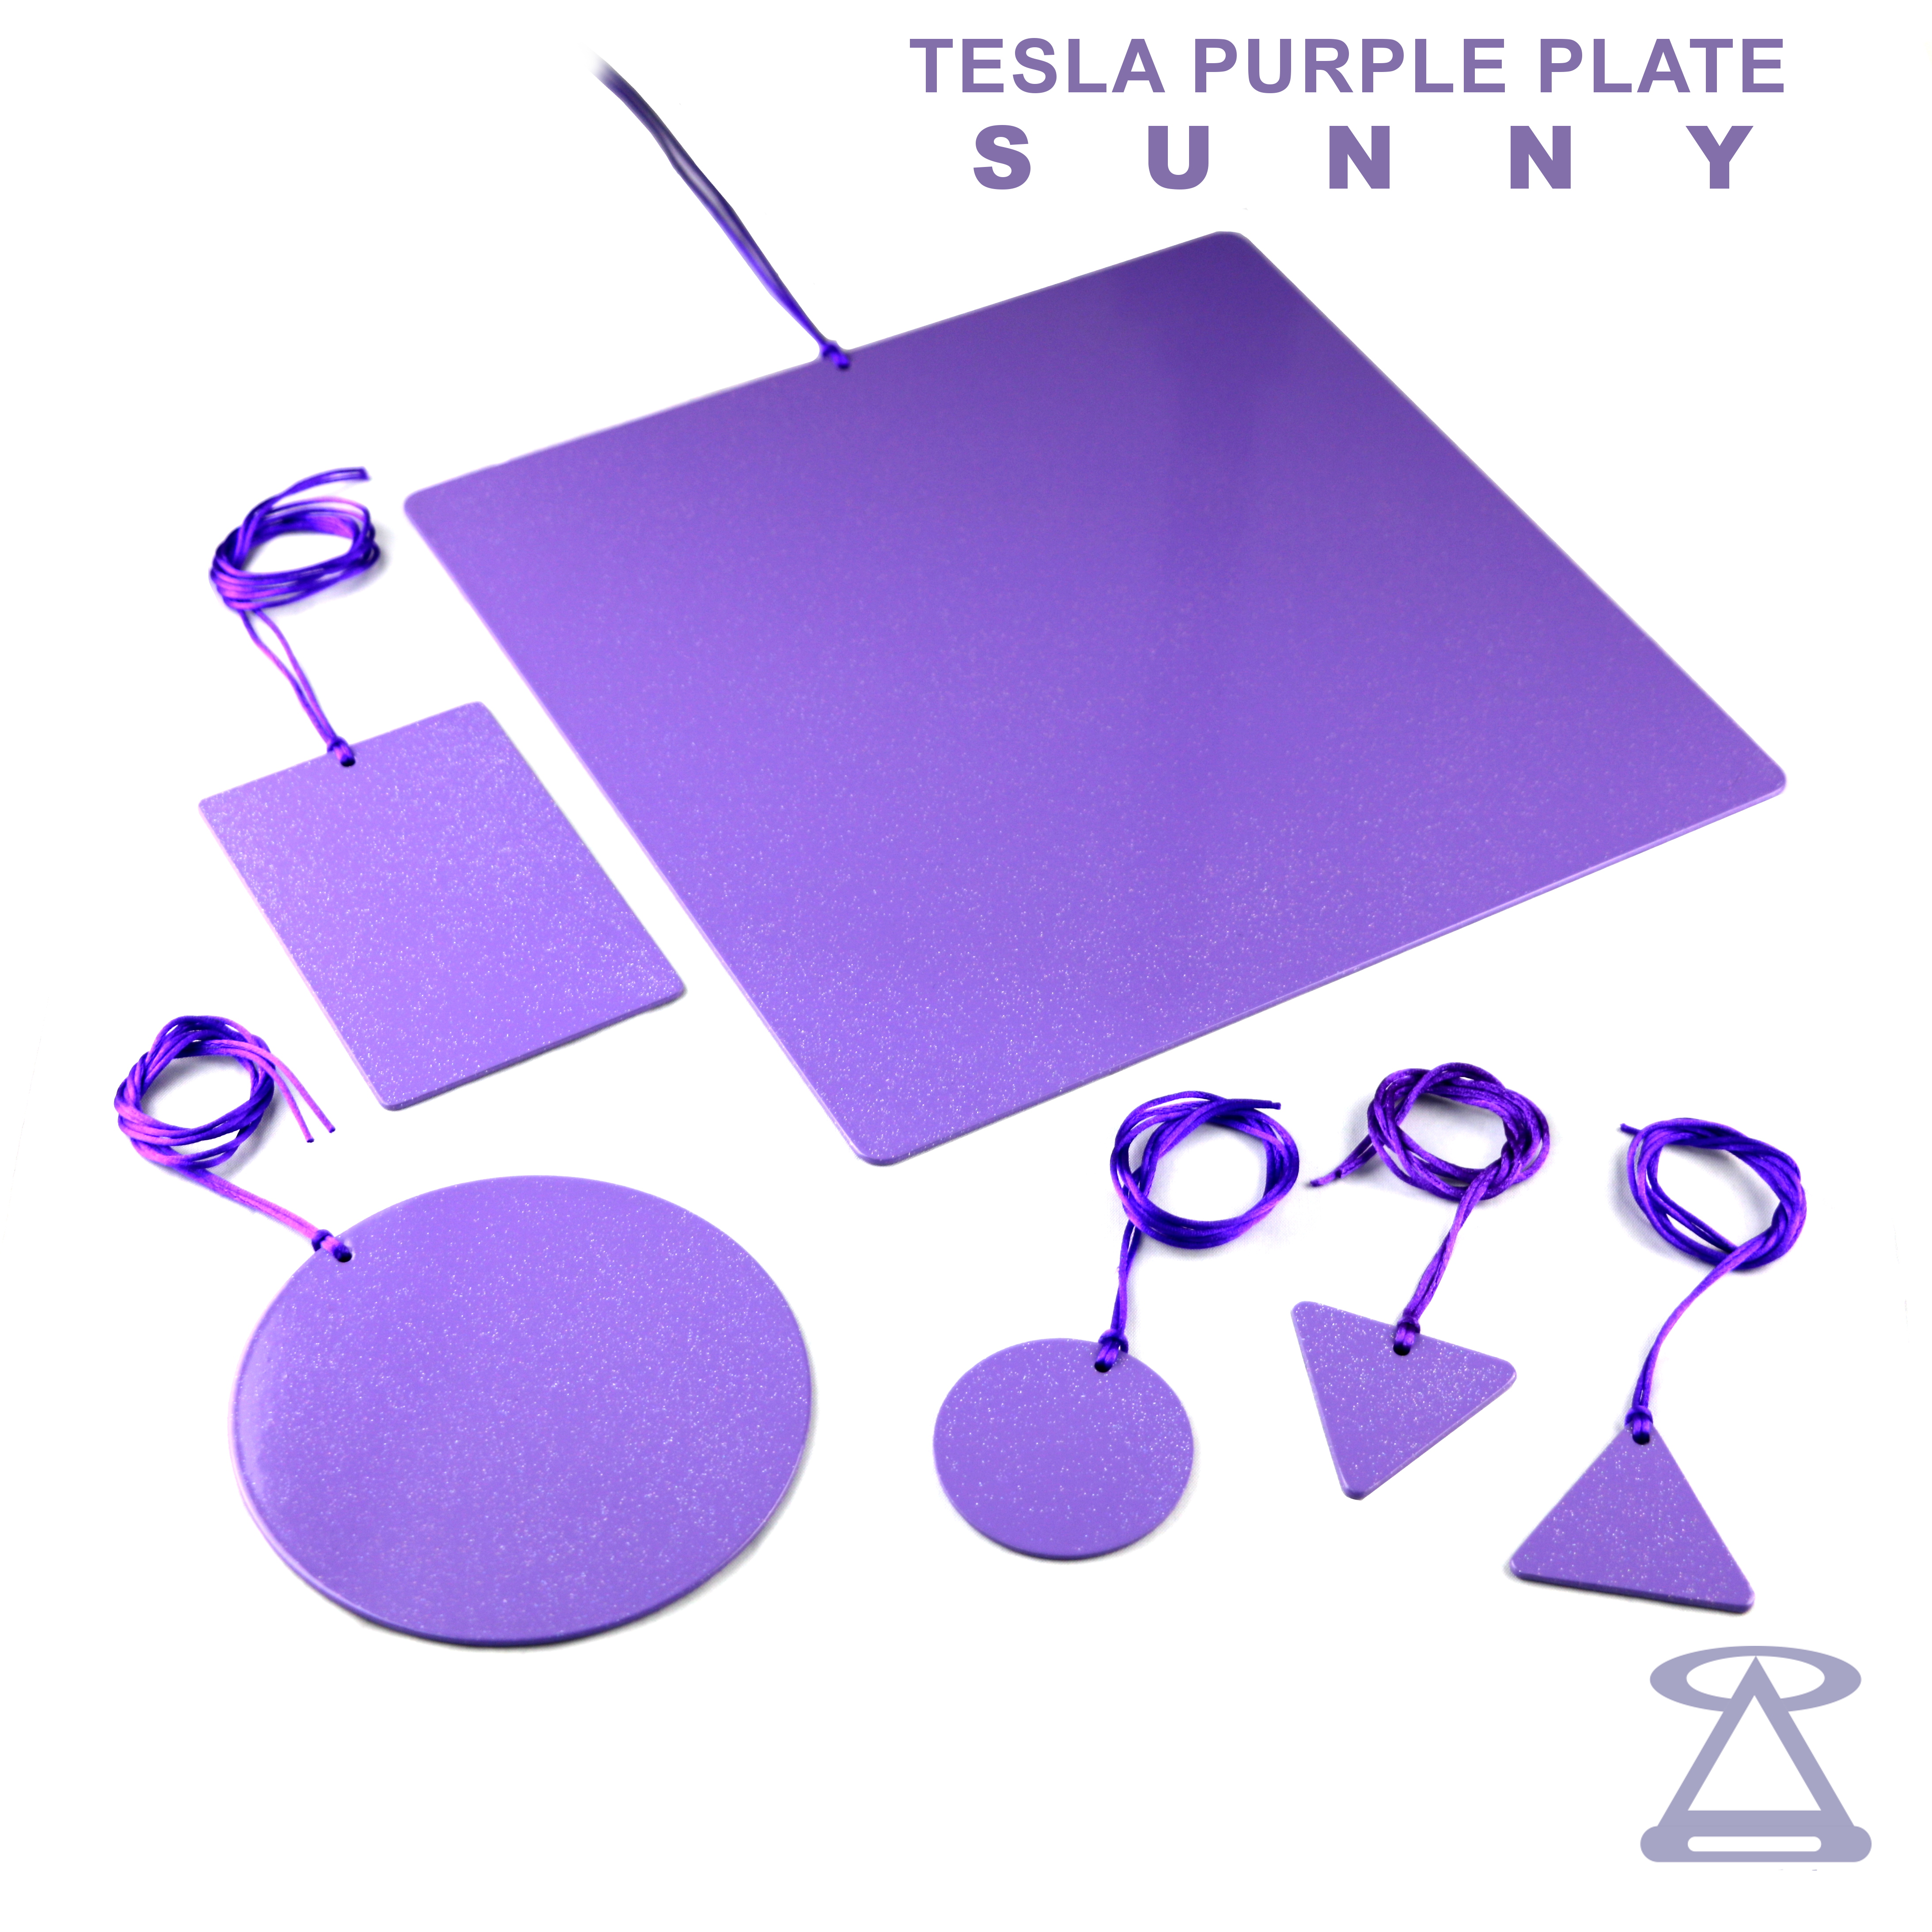 All our Tesla Purple Plates